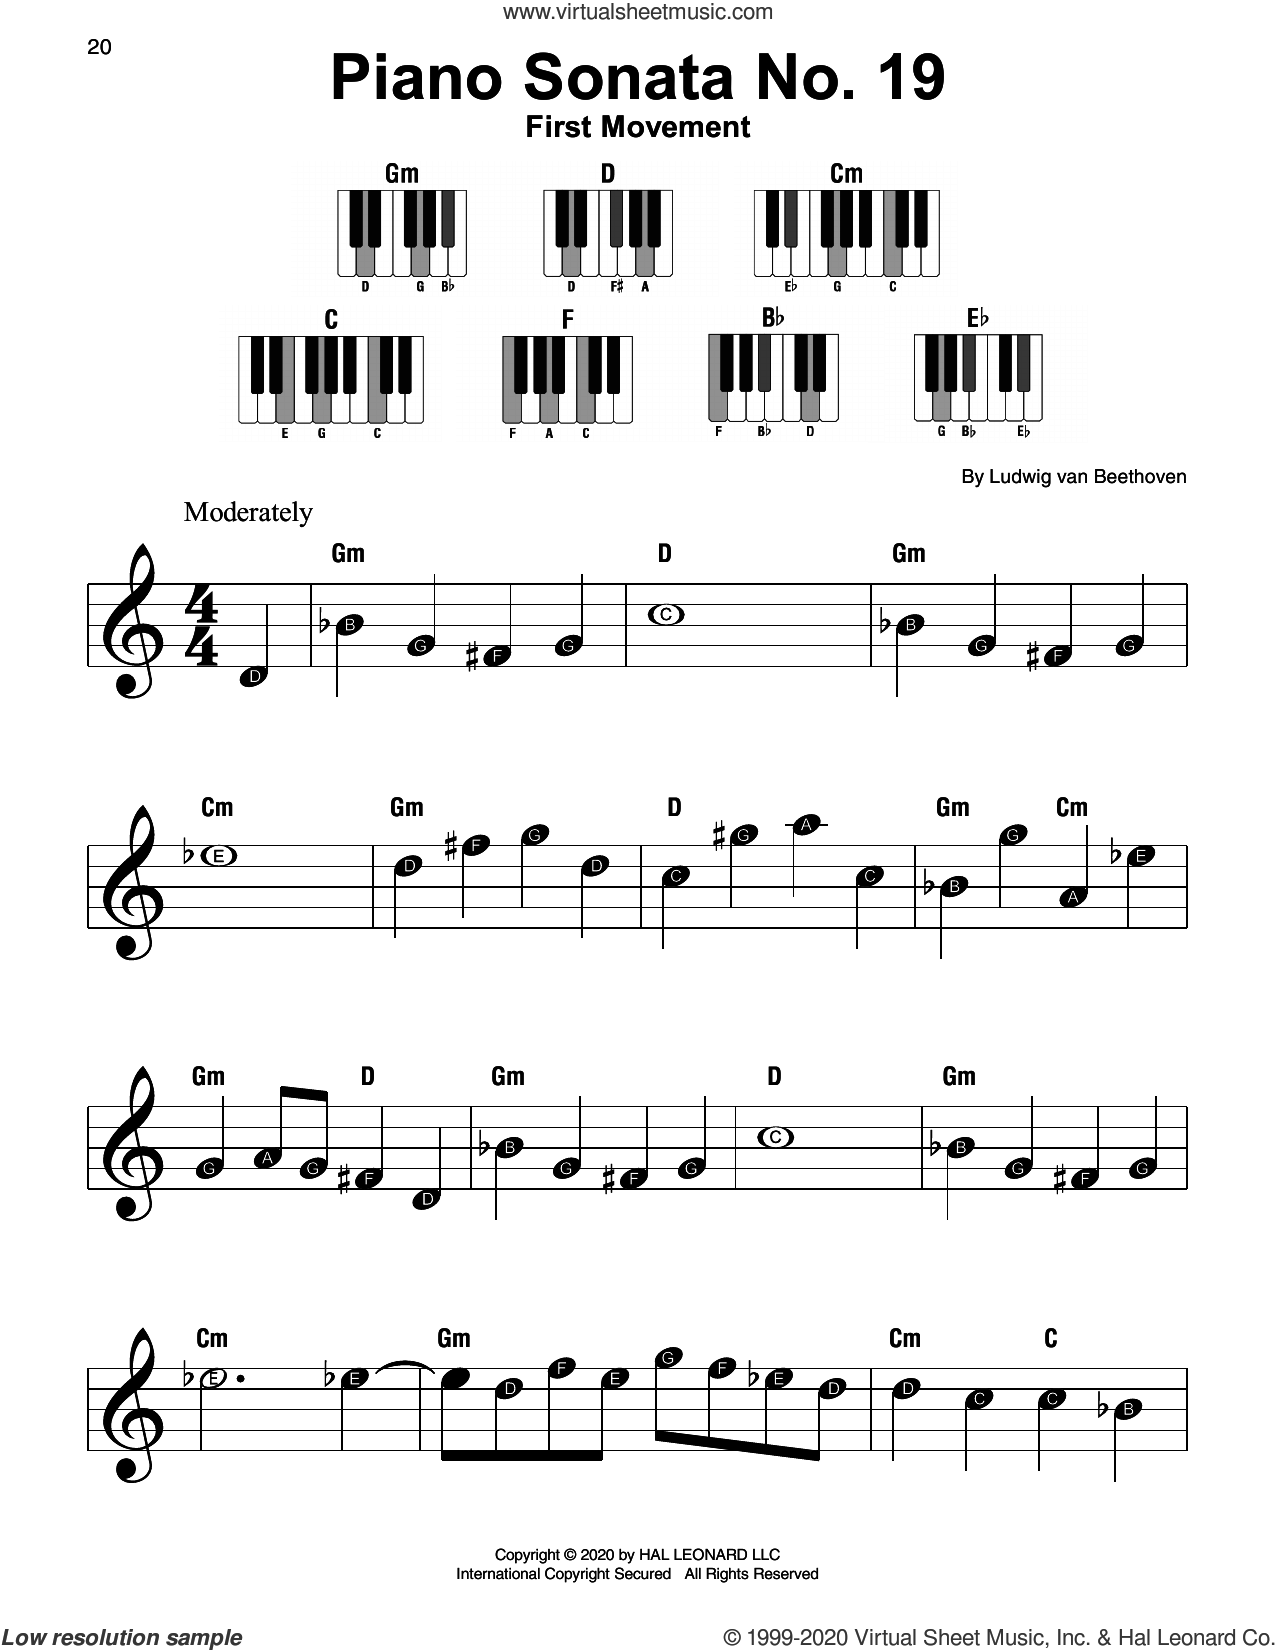 Piano Sonata No. 19, First Movement sheet music for piano solo by Ludwig van Beethoven, classical score, beginner skill level